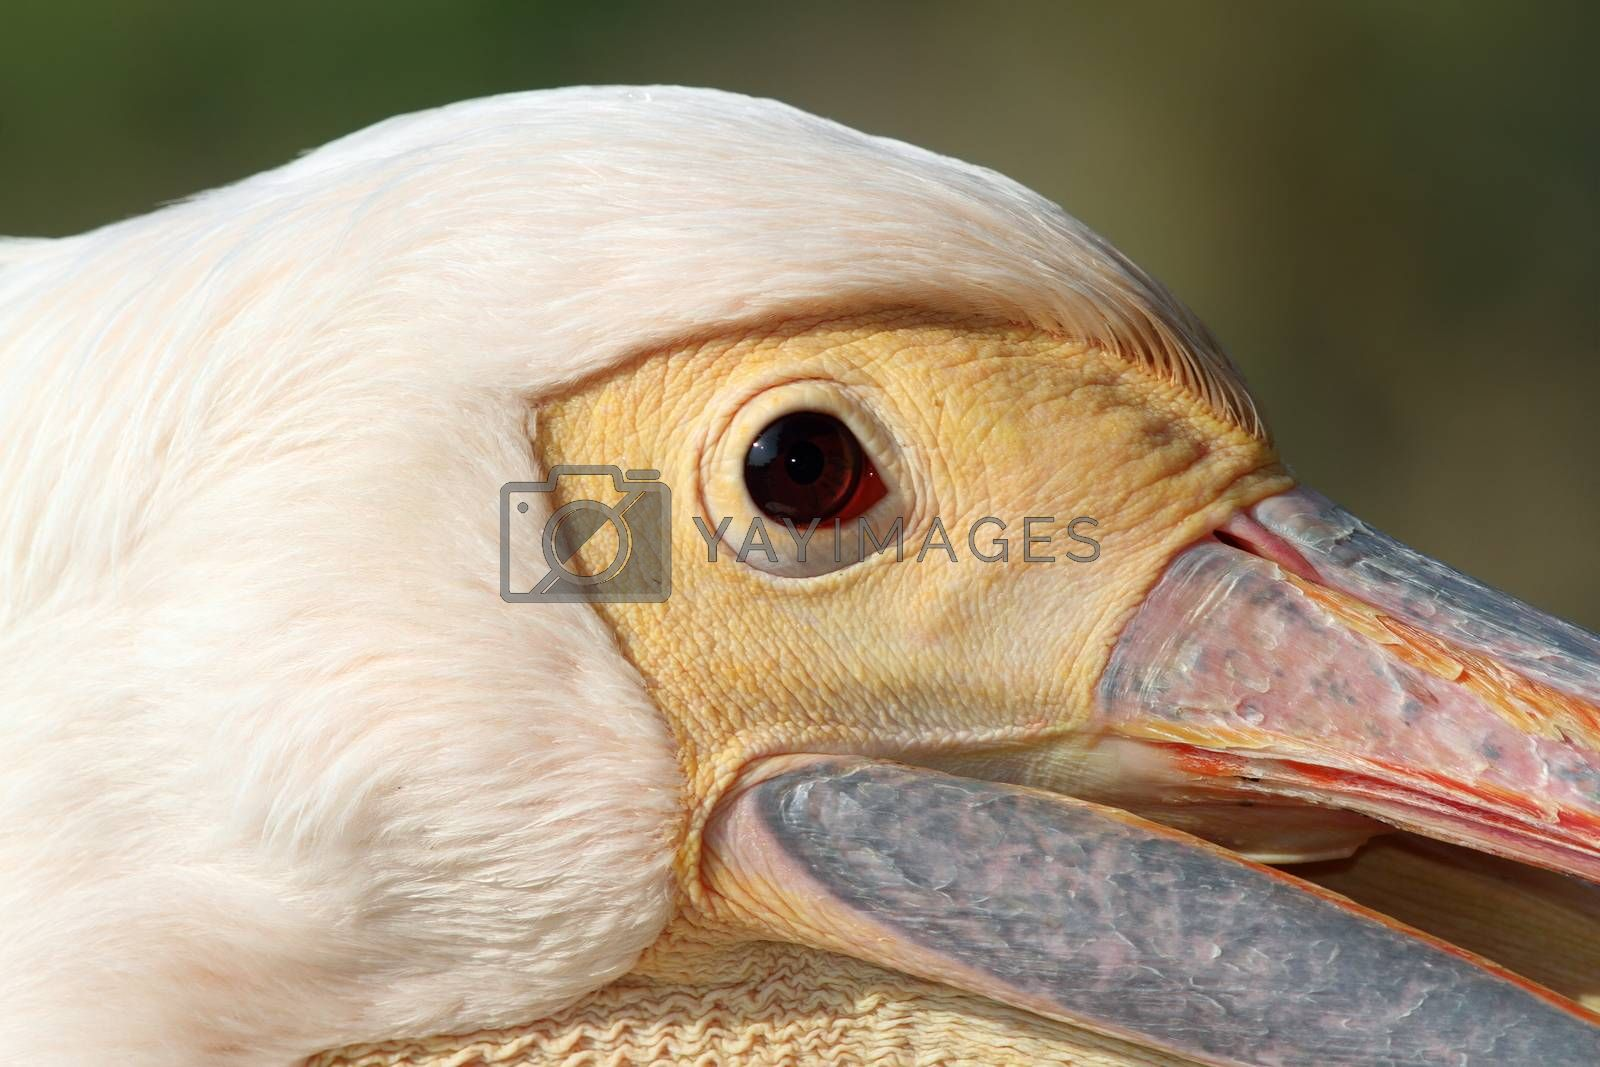 Royalty free image of face of pelecanus onocrotalus by taviphoto